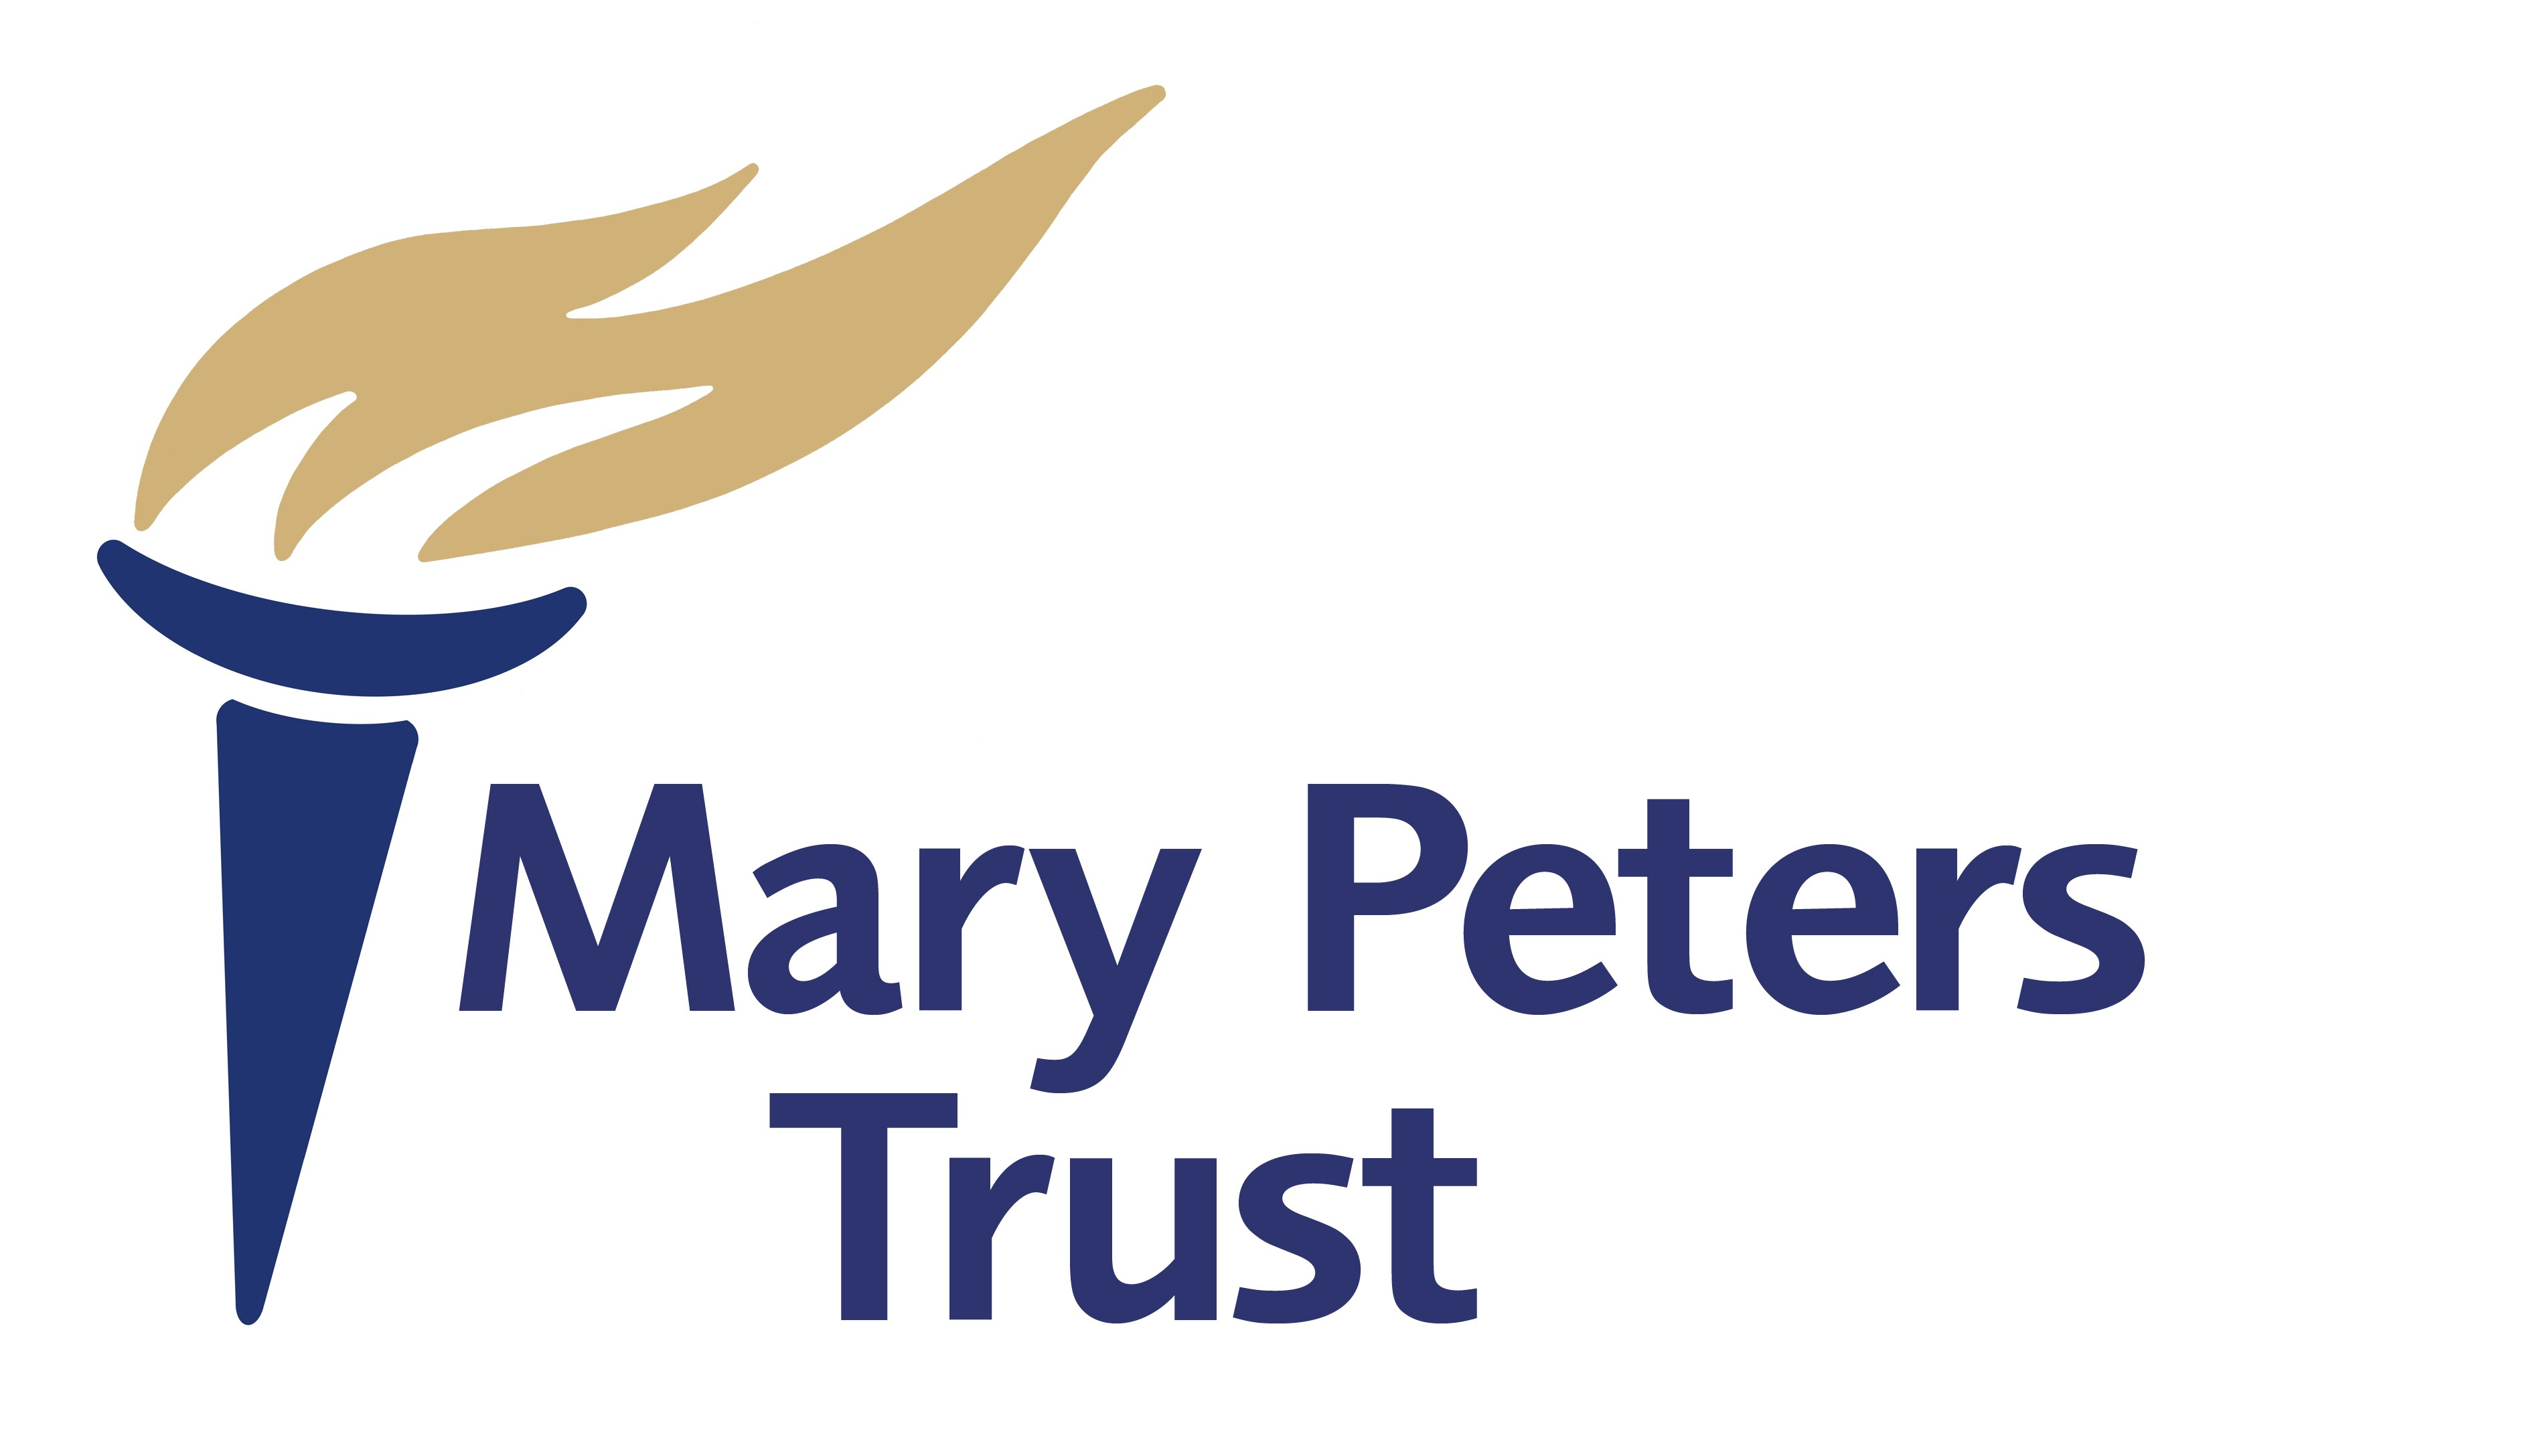 Mary Peters Trust